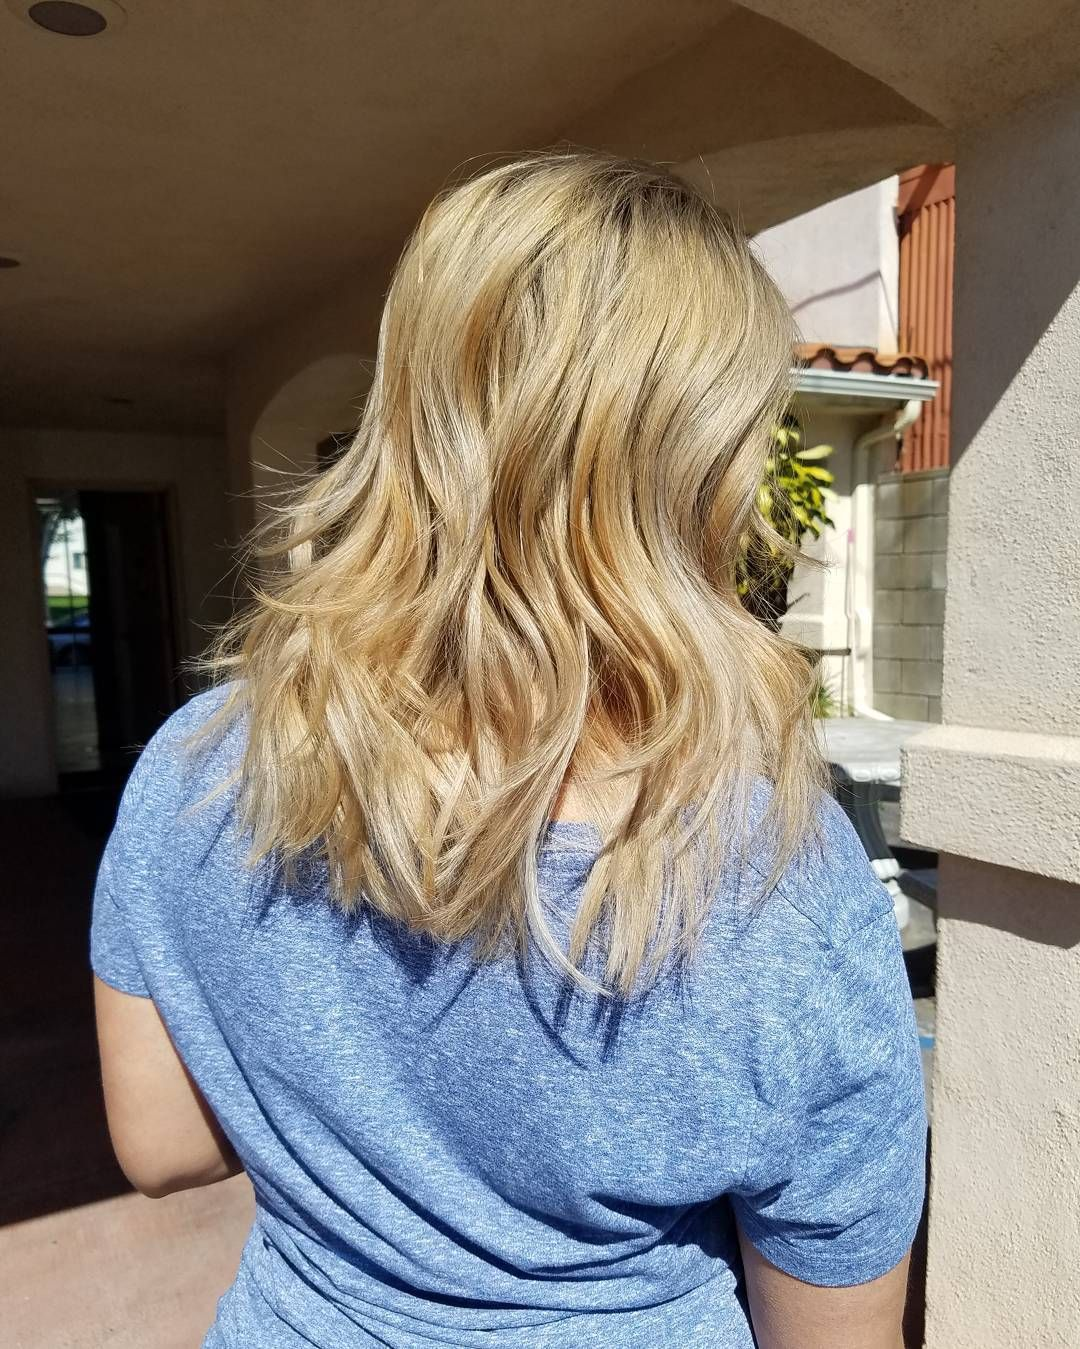 50 Best Hairstyles for Older Women in 2017 Check more at